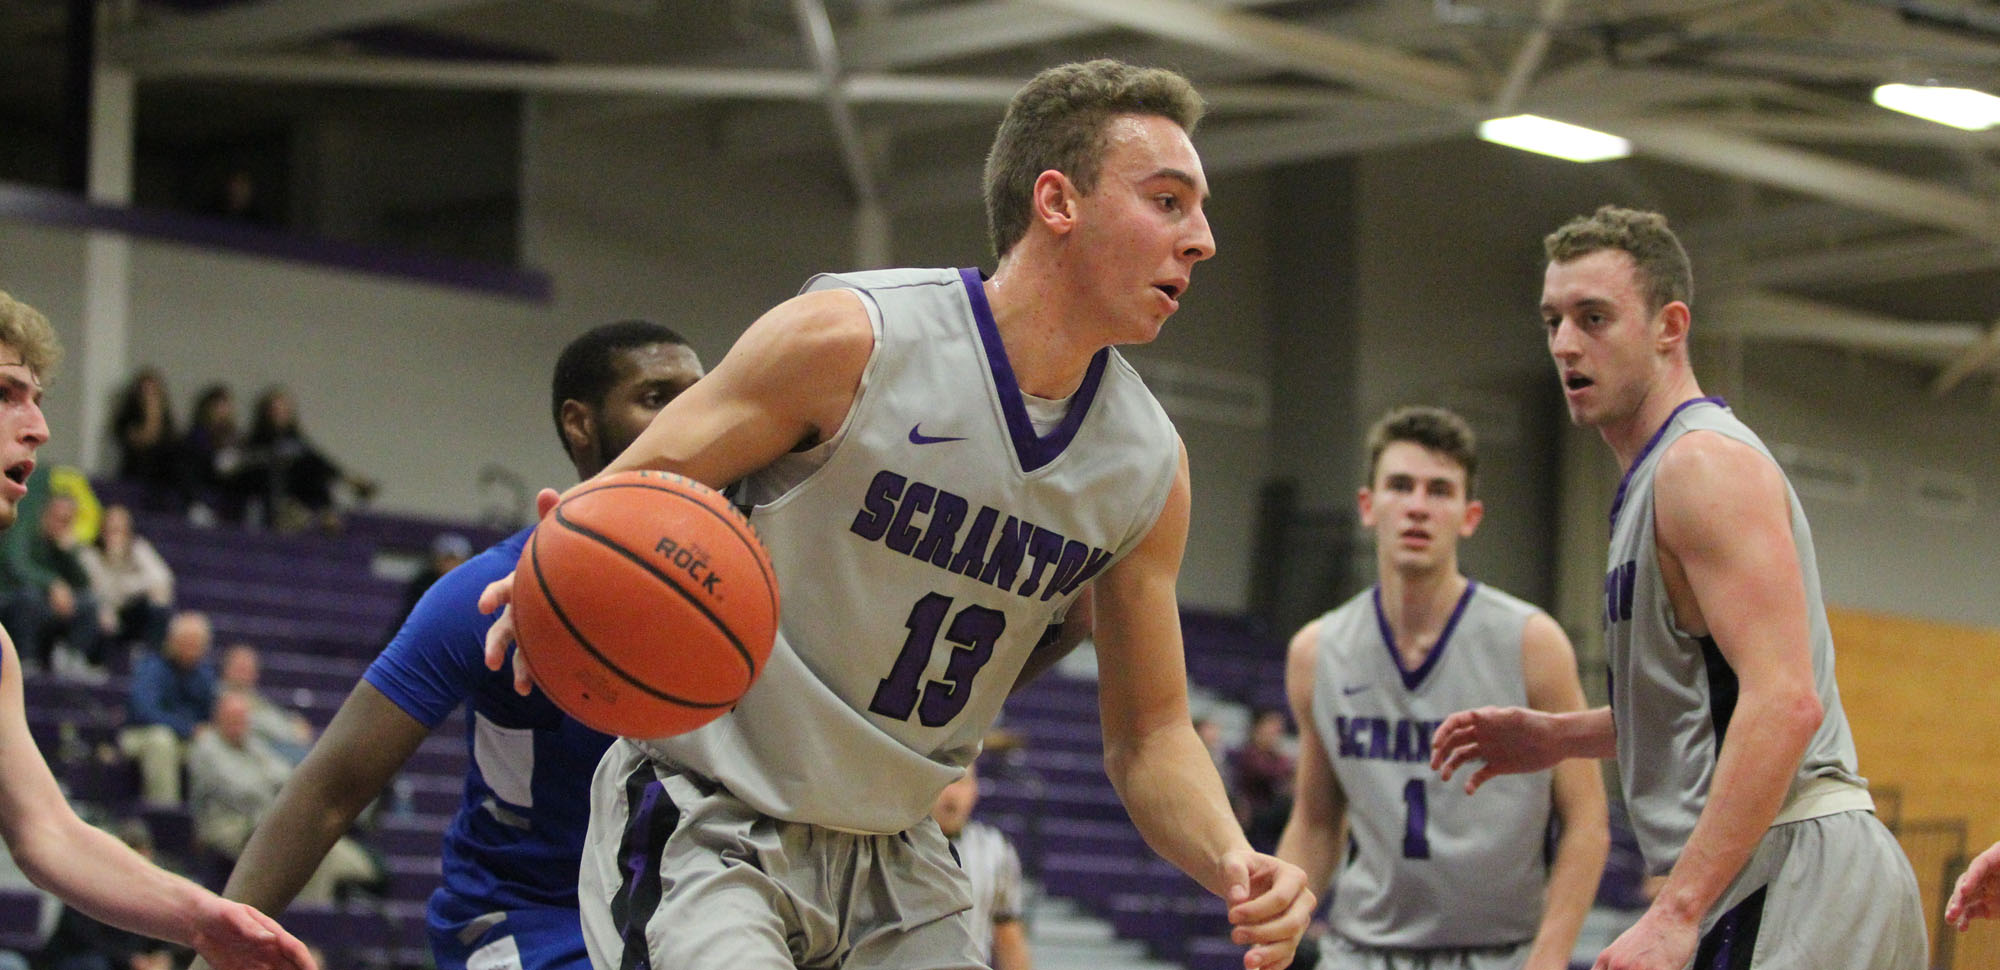 Logan Bailey scored a season and game-high 19 points including 17 in the first half on Saturday at Scranton won its Landmark Conference opener against Goucher.